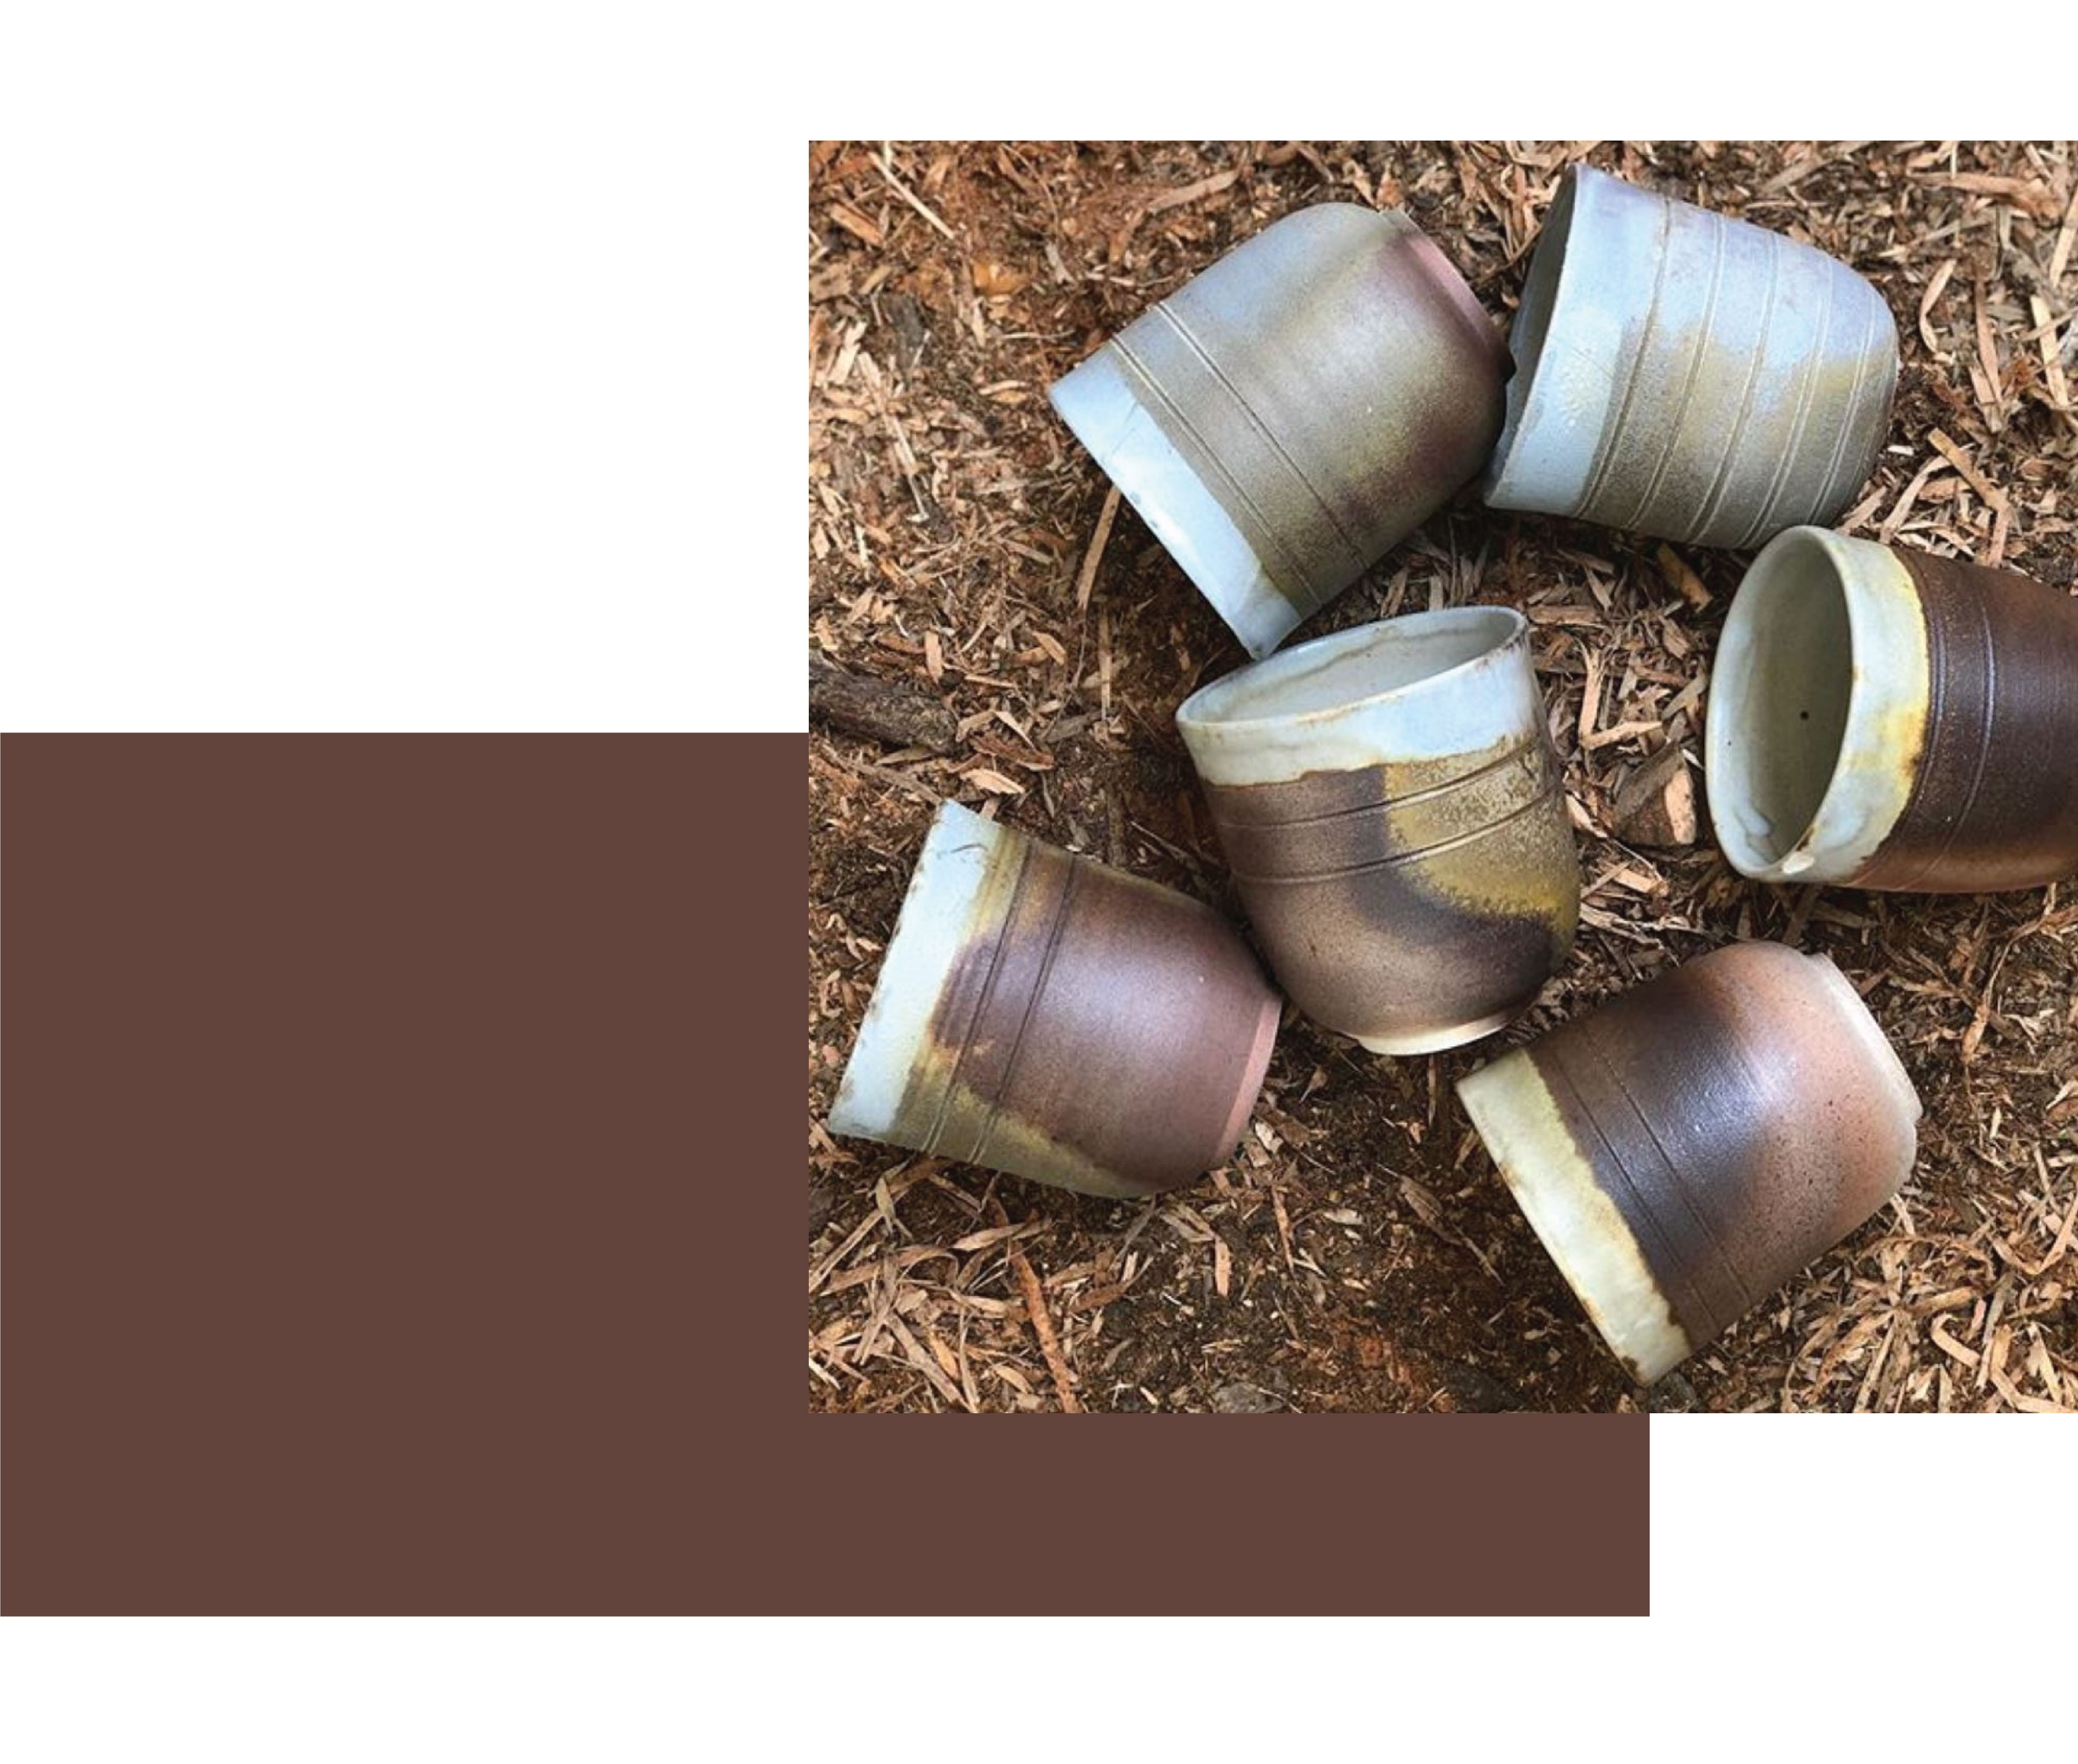 Pottery by New Zealand ceramist Galit Maxwell. 6 anagama woodfired ceramic tumblers in browns and blues, sitting on mulch bark textured background.